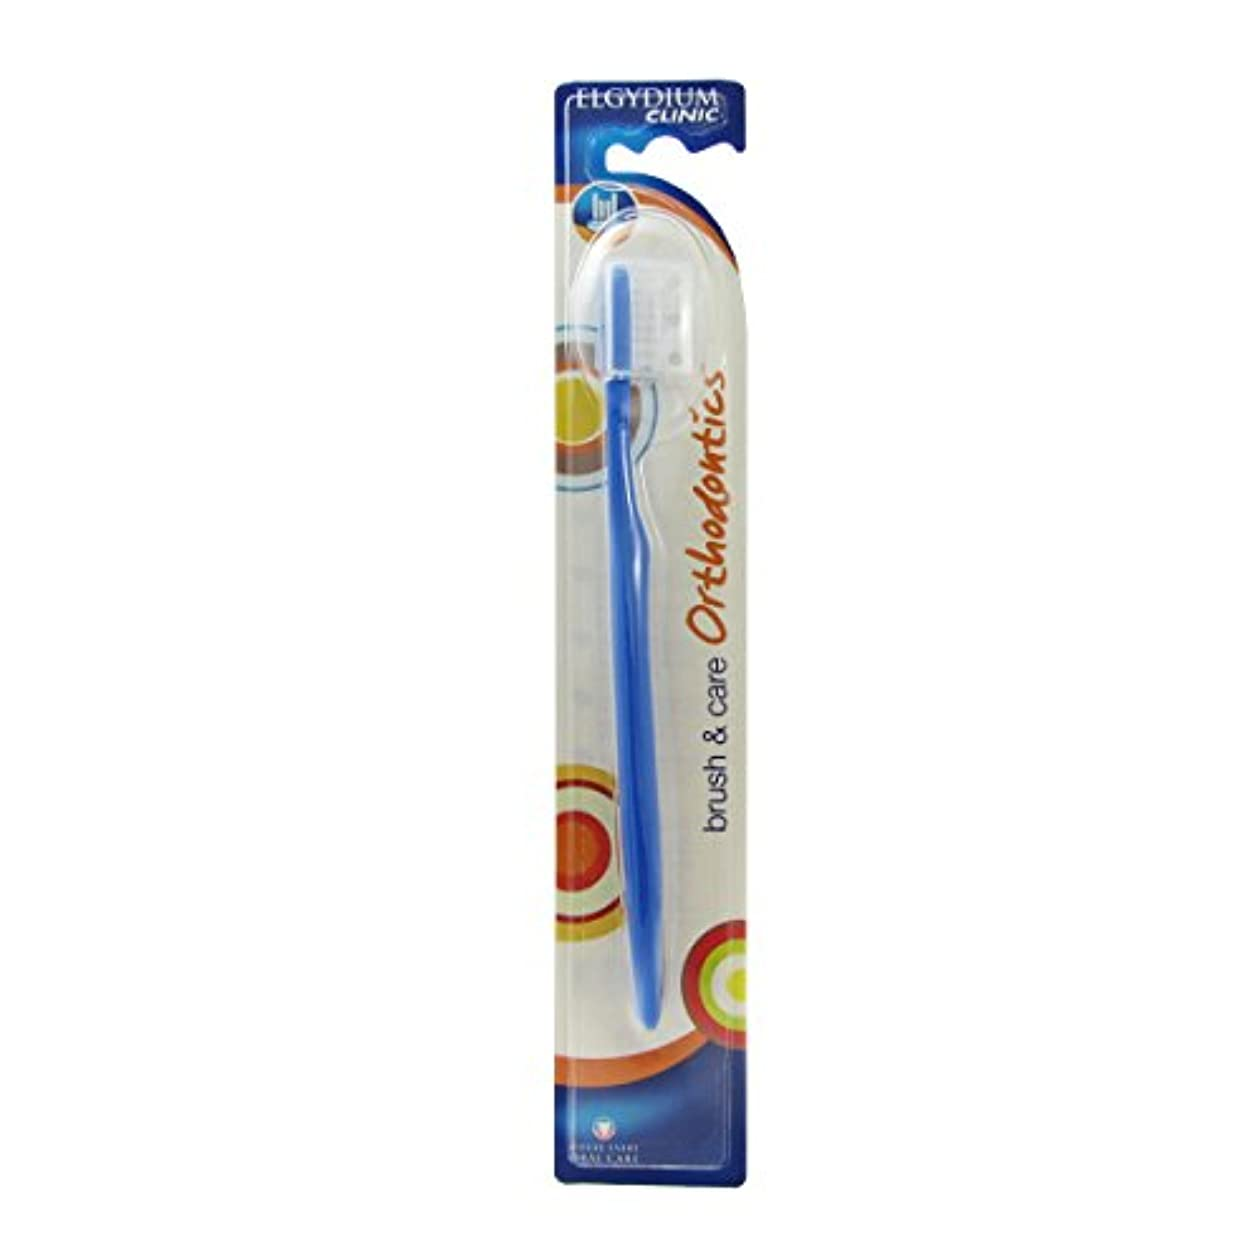 リボンがんばり続ける大量Elgydium Clinic Orthodontics Orthodontic Medium Children Toothbrush [並行輸入品]